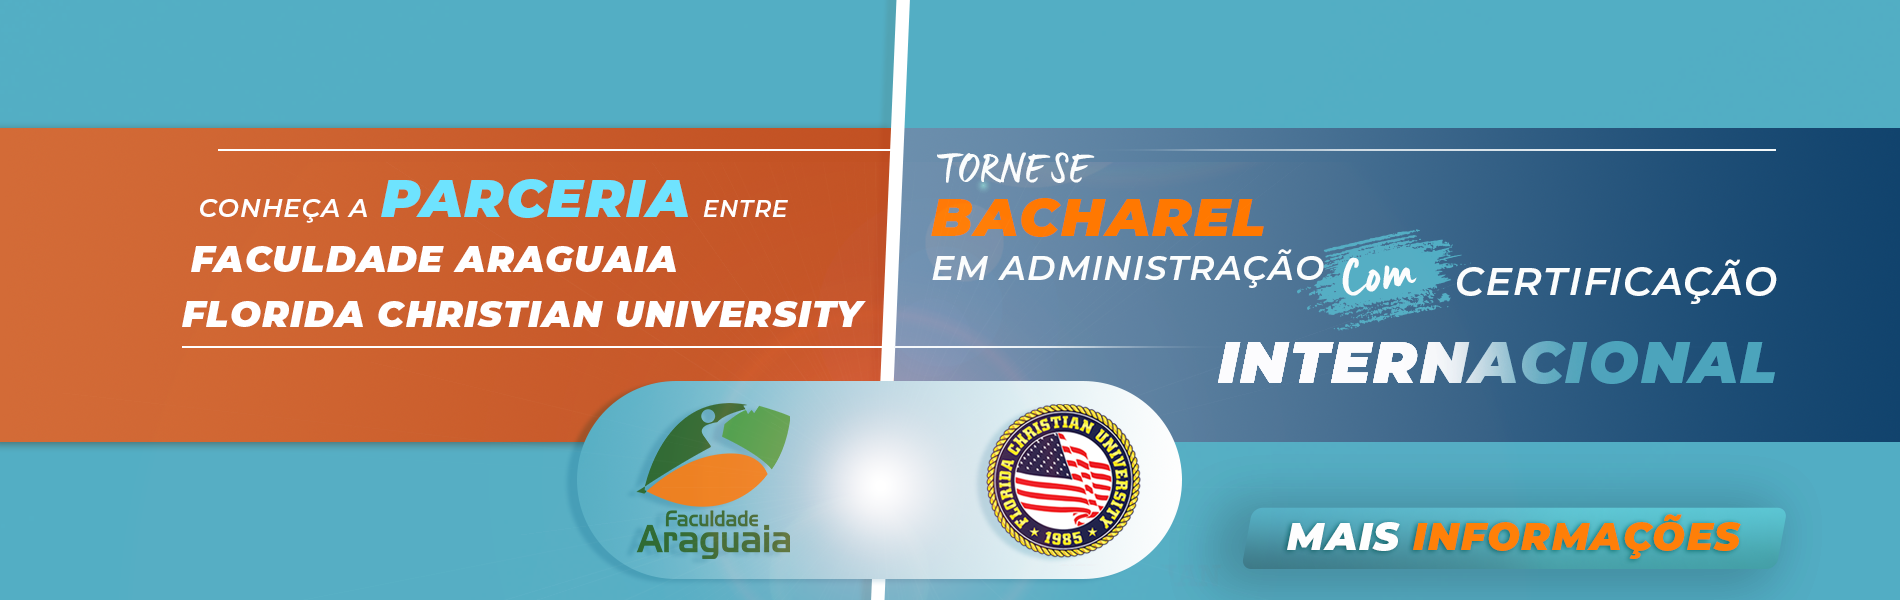 Parceria Faculdade Araguaia e Florida Christian University